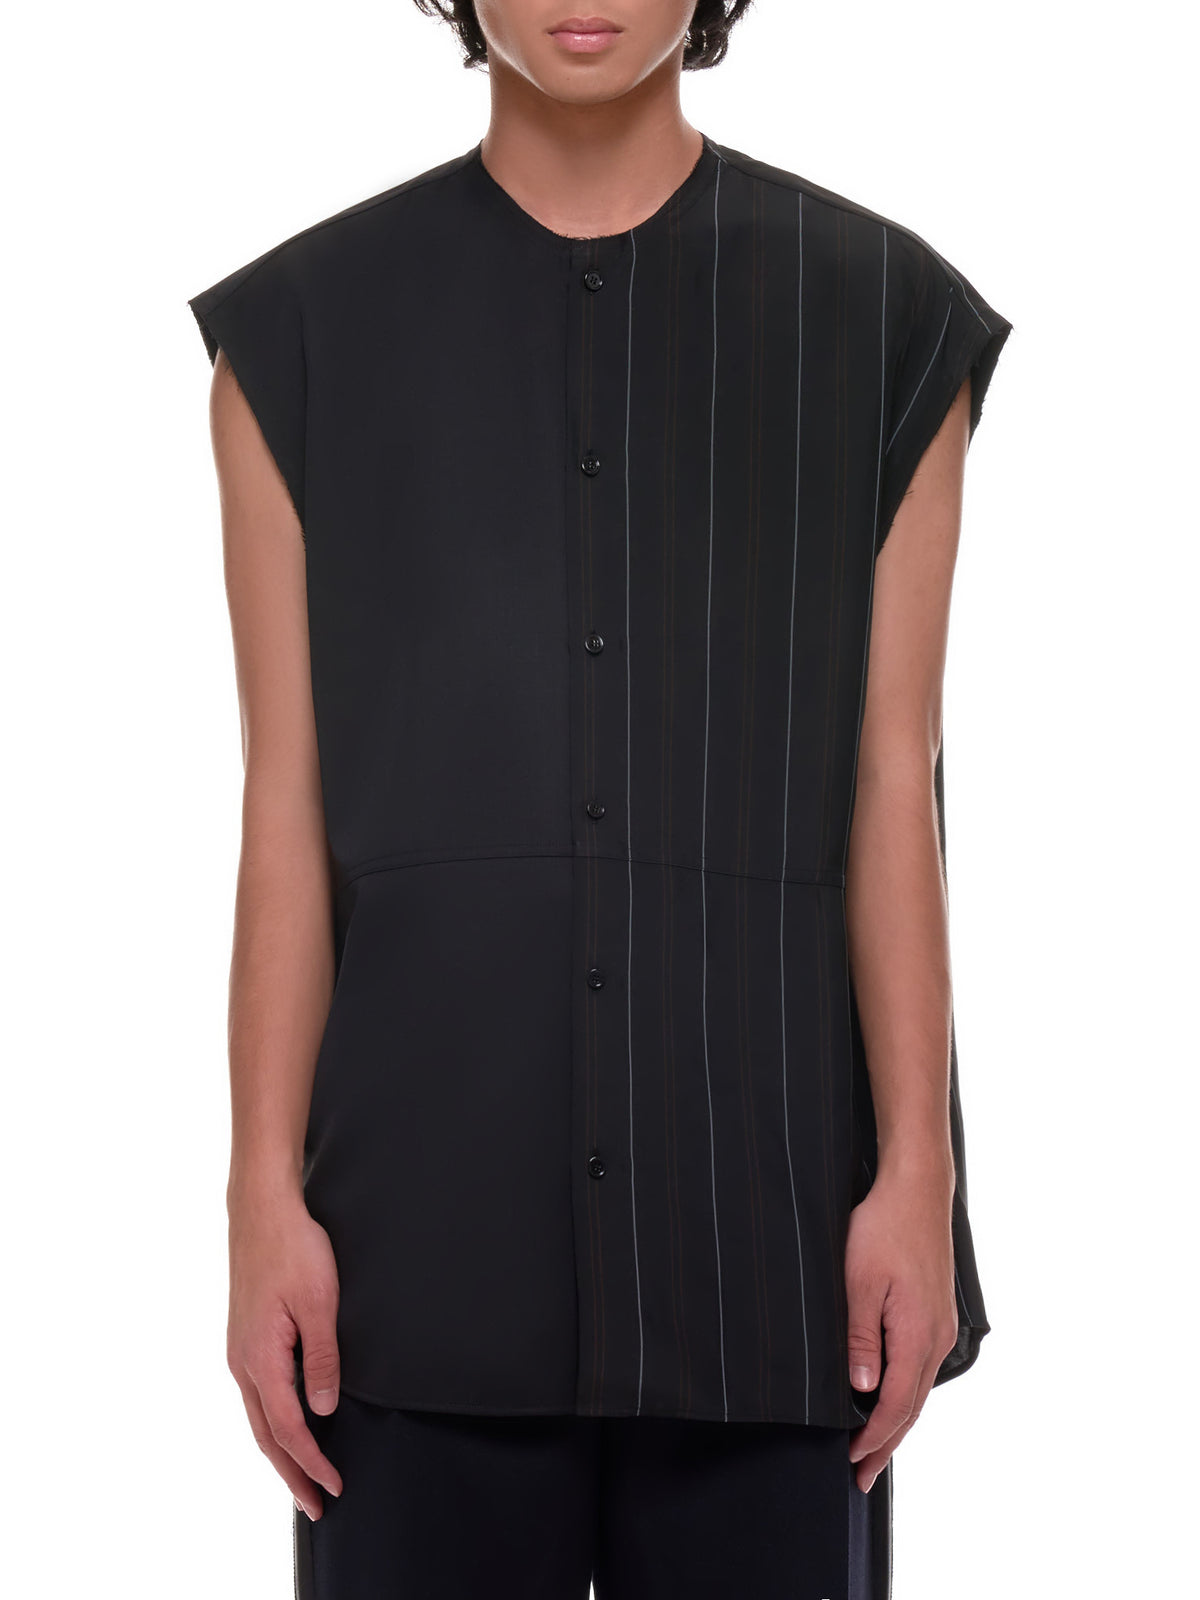 Striped Sleeveless Button-Up (602531-BLACK)